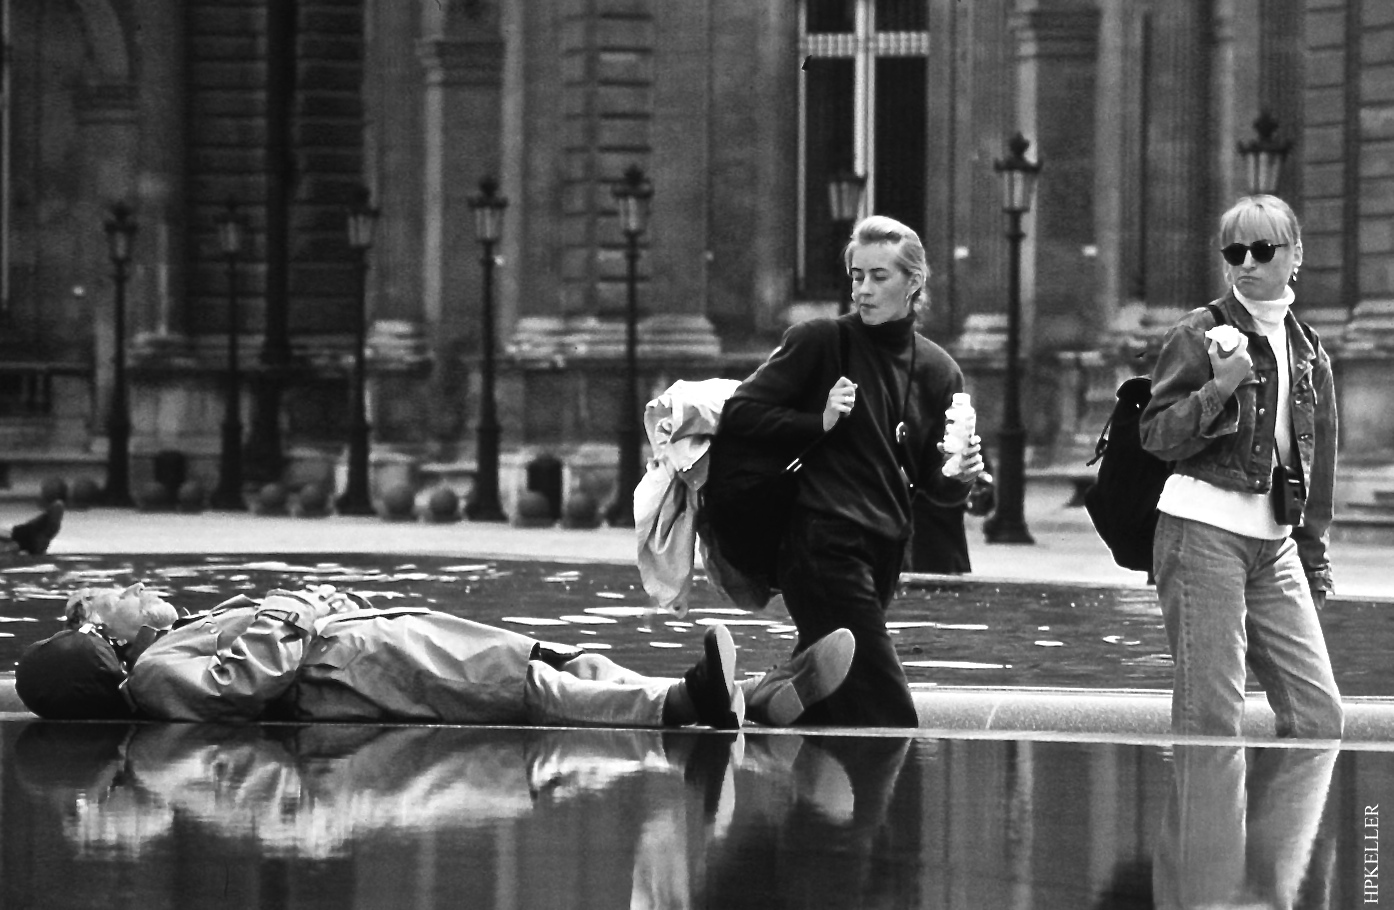 ...some years ago in Paris II - 1989